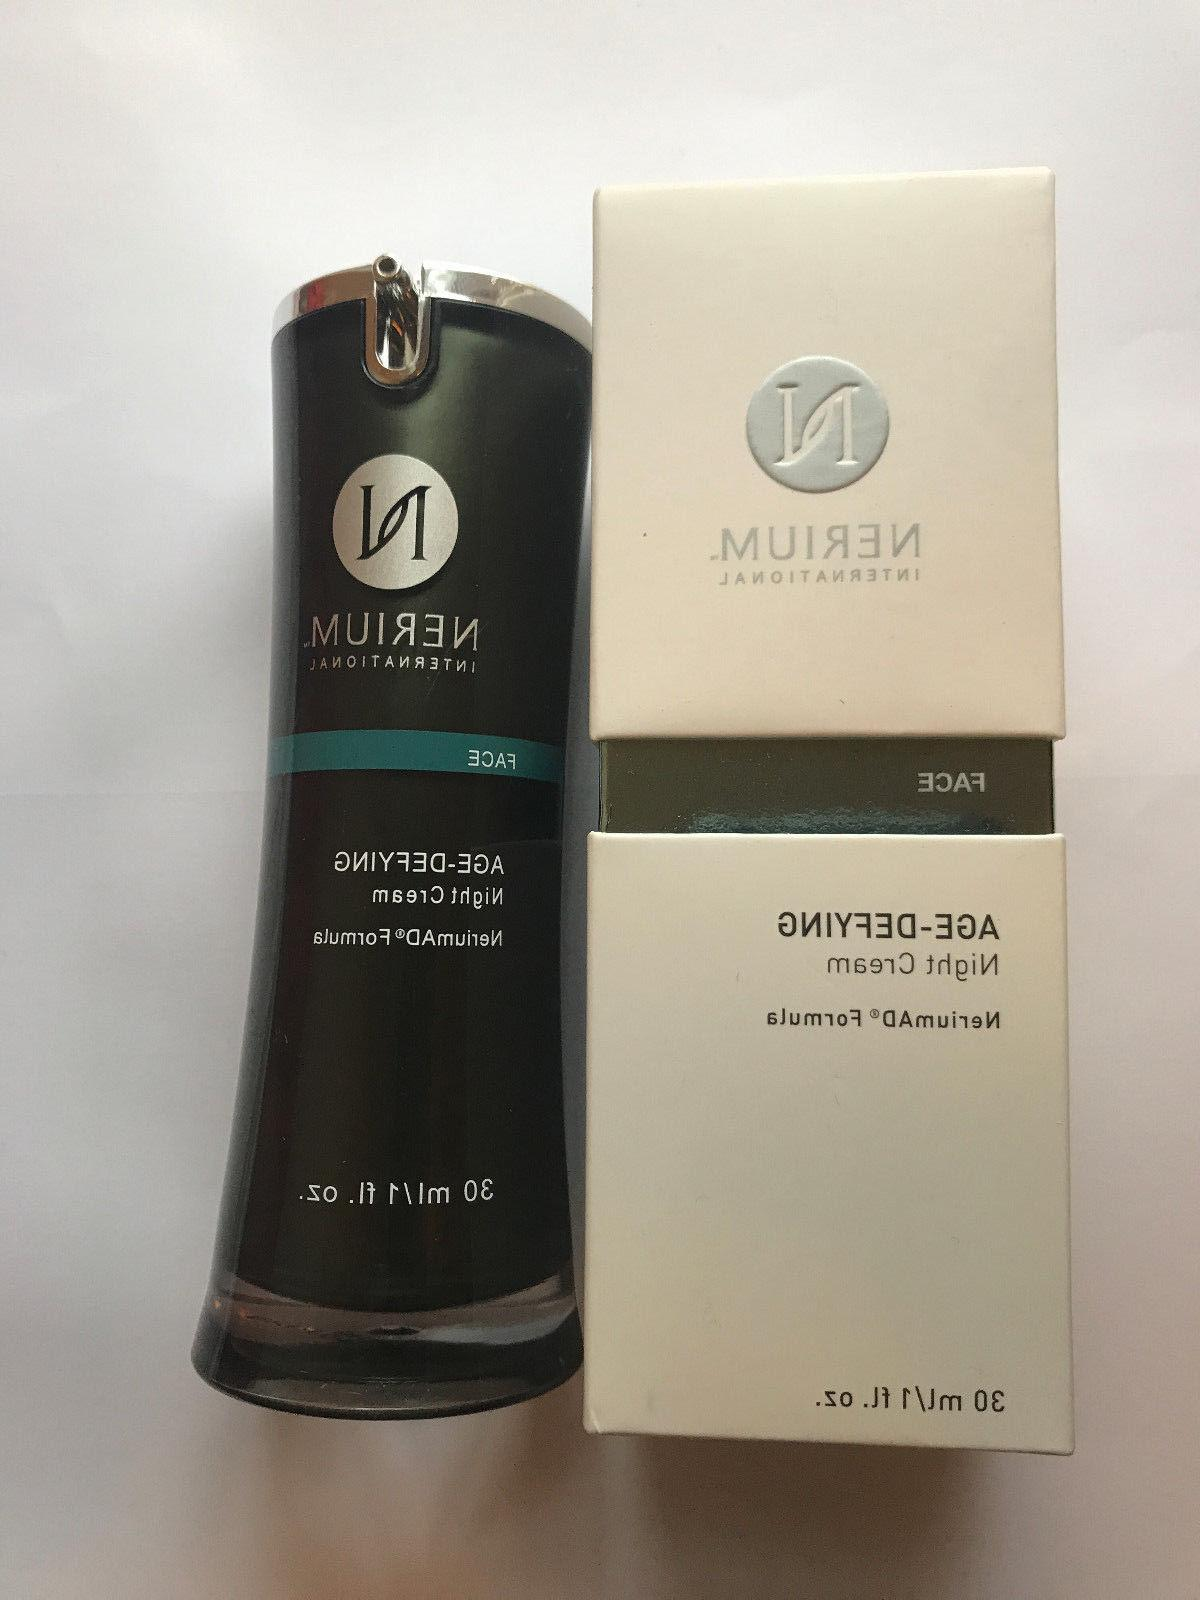 Nerium AD - Age Defying NIGHT CREAM, New in Box - NEWEST!